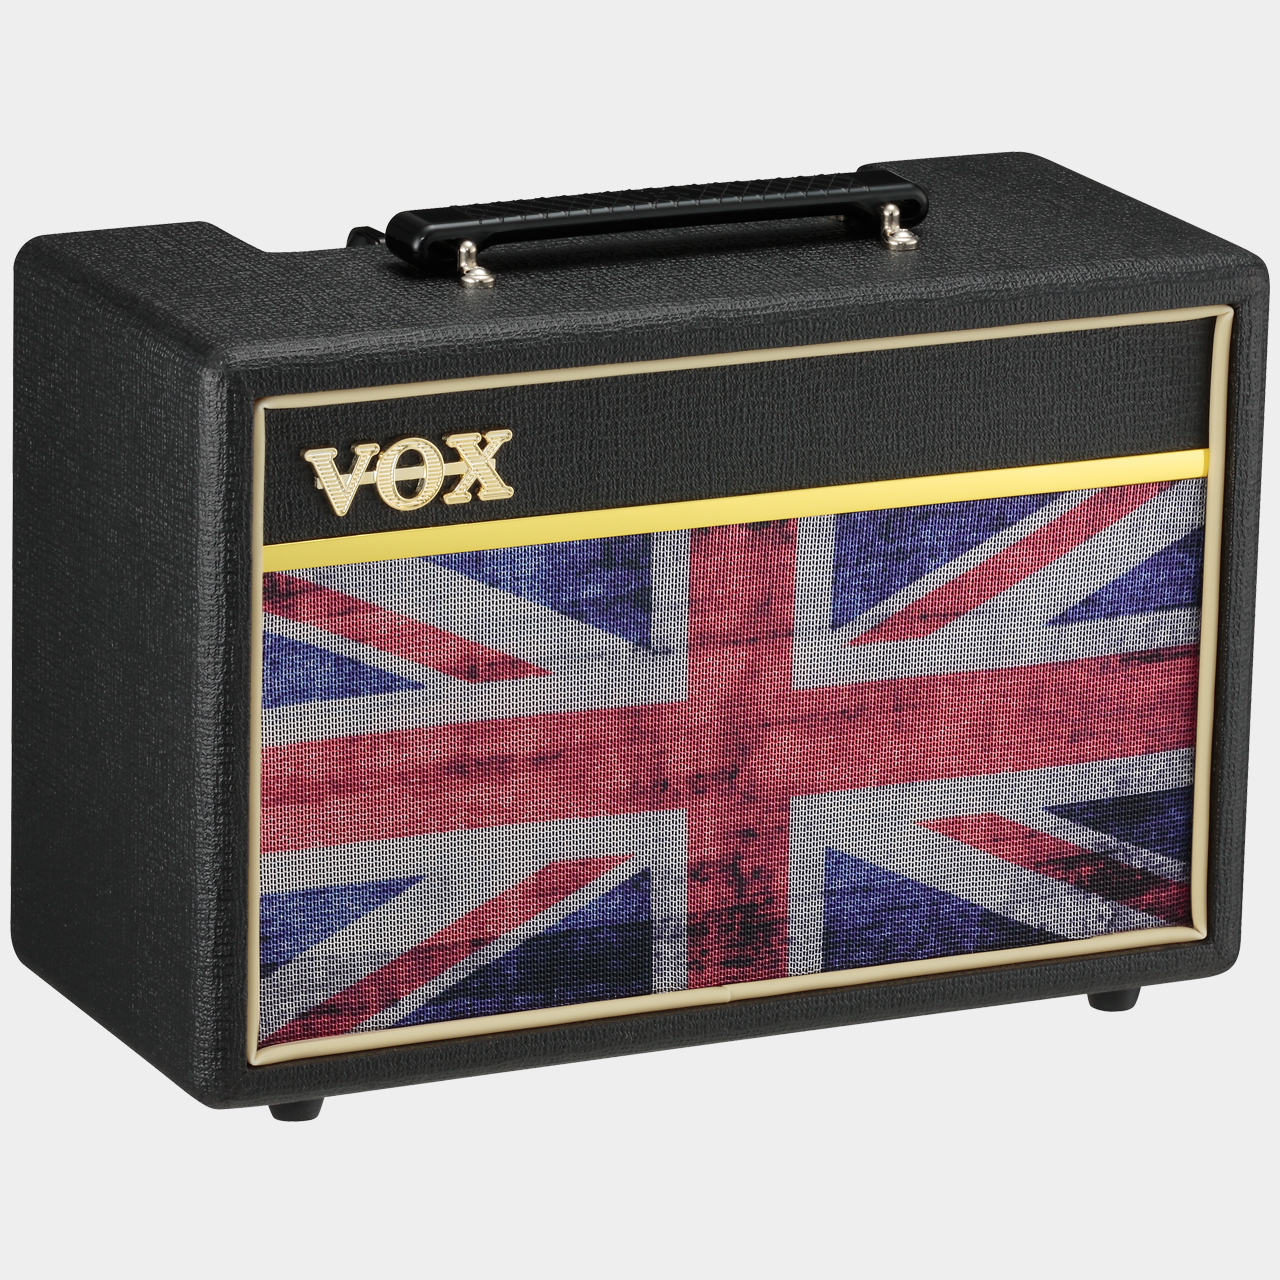 VOX Pathfinder 10 Union Jack Black Limited Edition